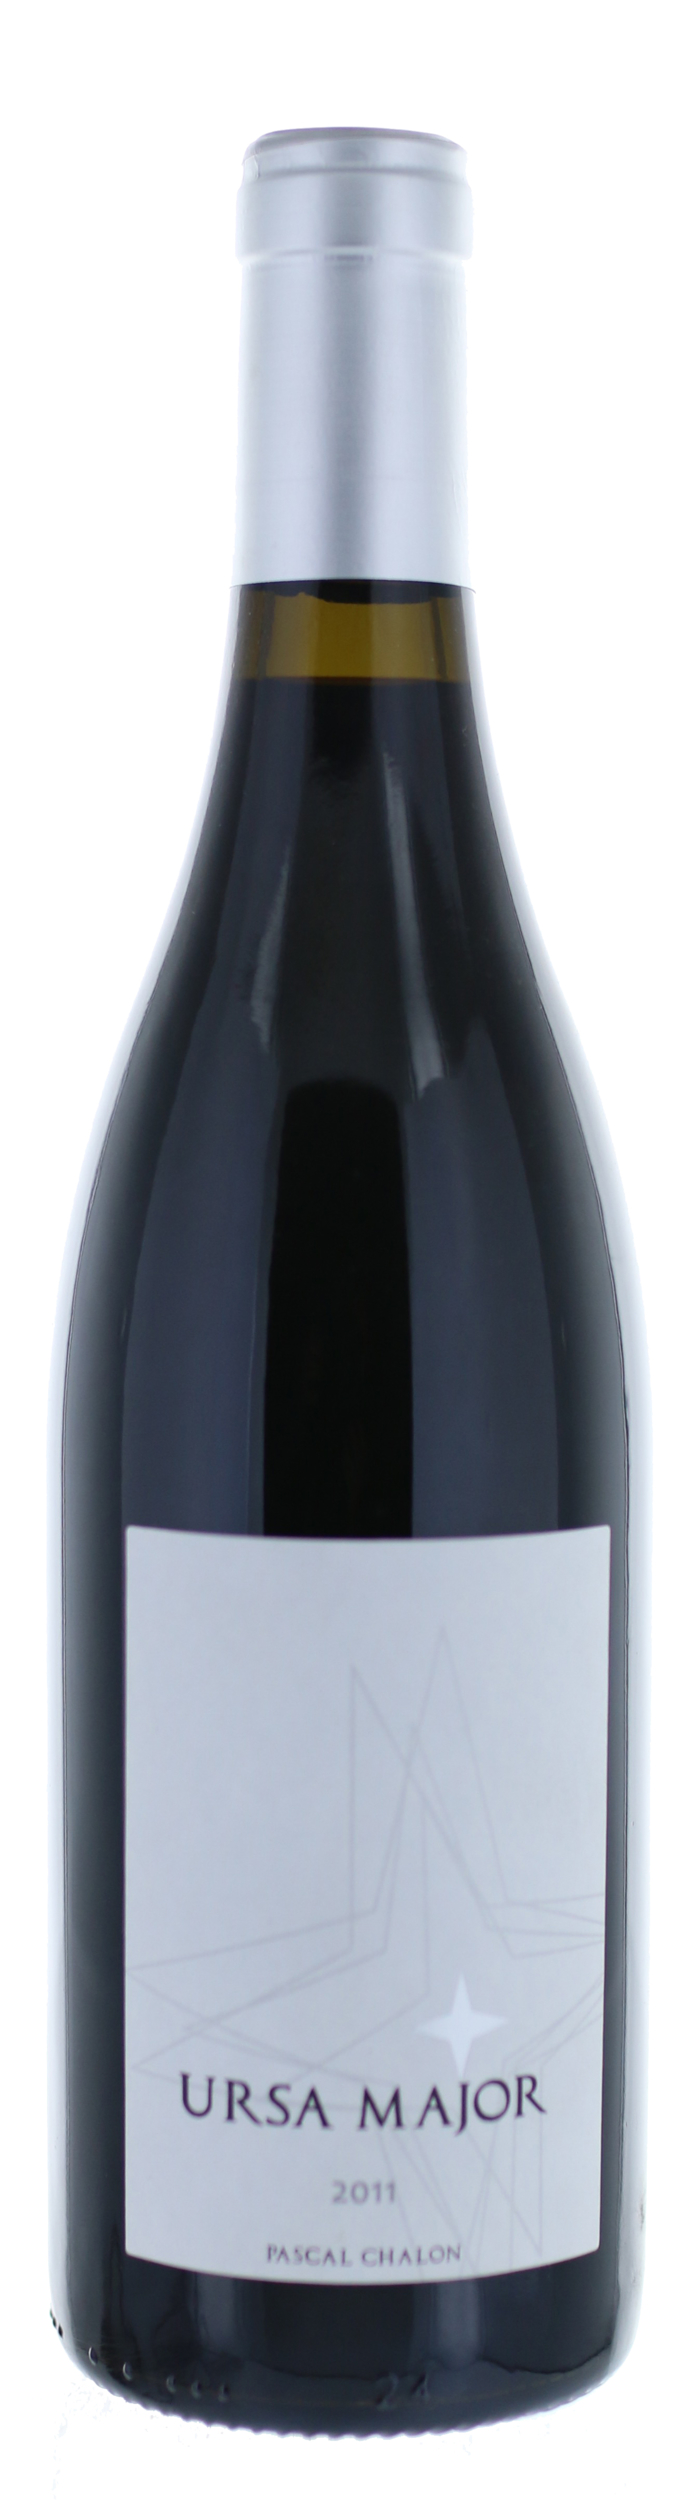 Cotes du Rhone - Ursa Major - Domaine La Grande Ourse - 2017 - BIO